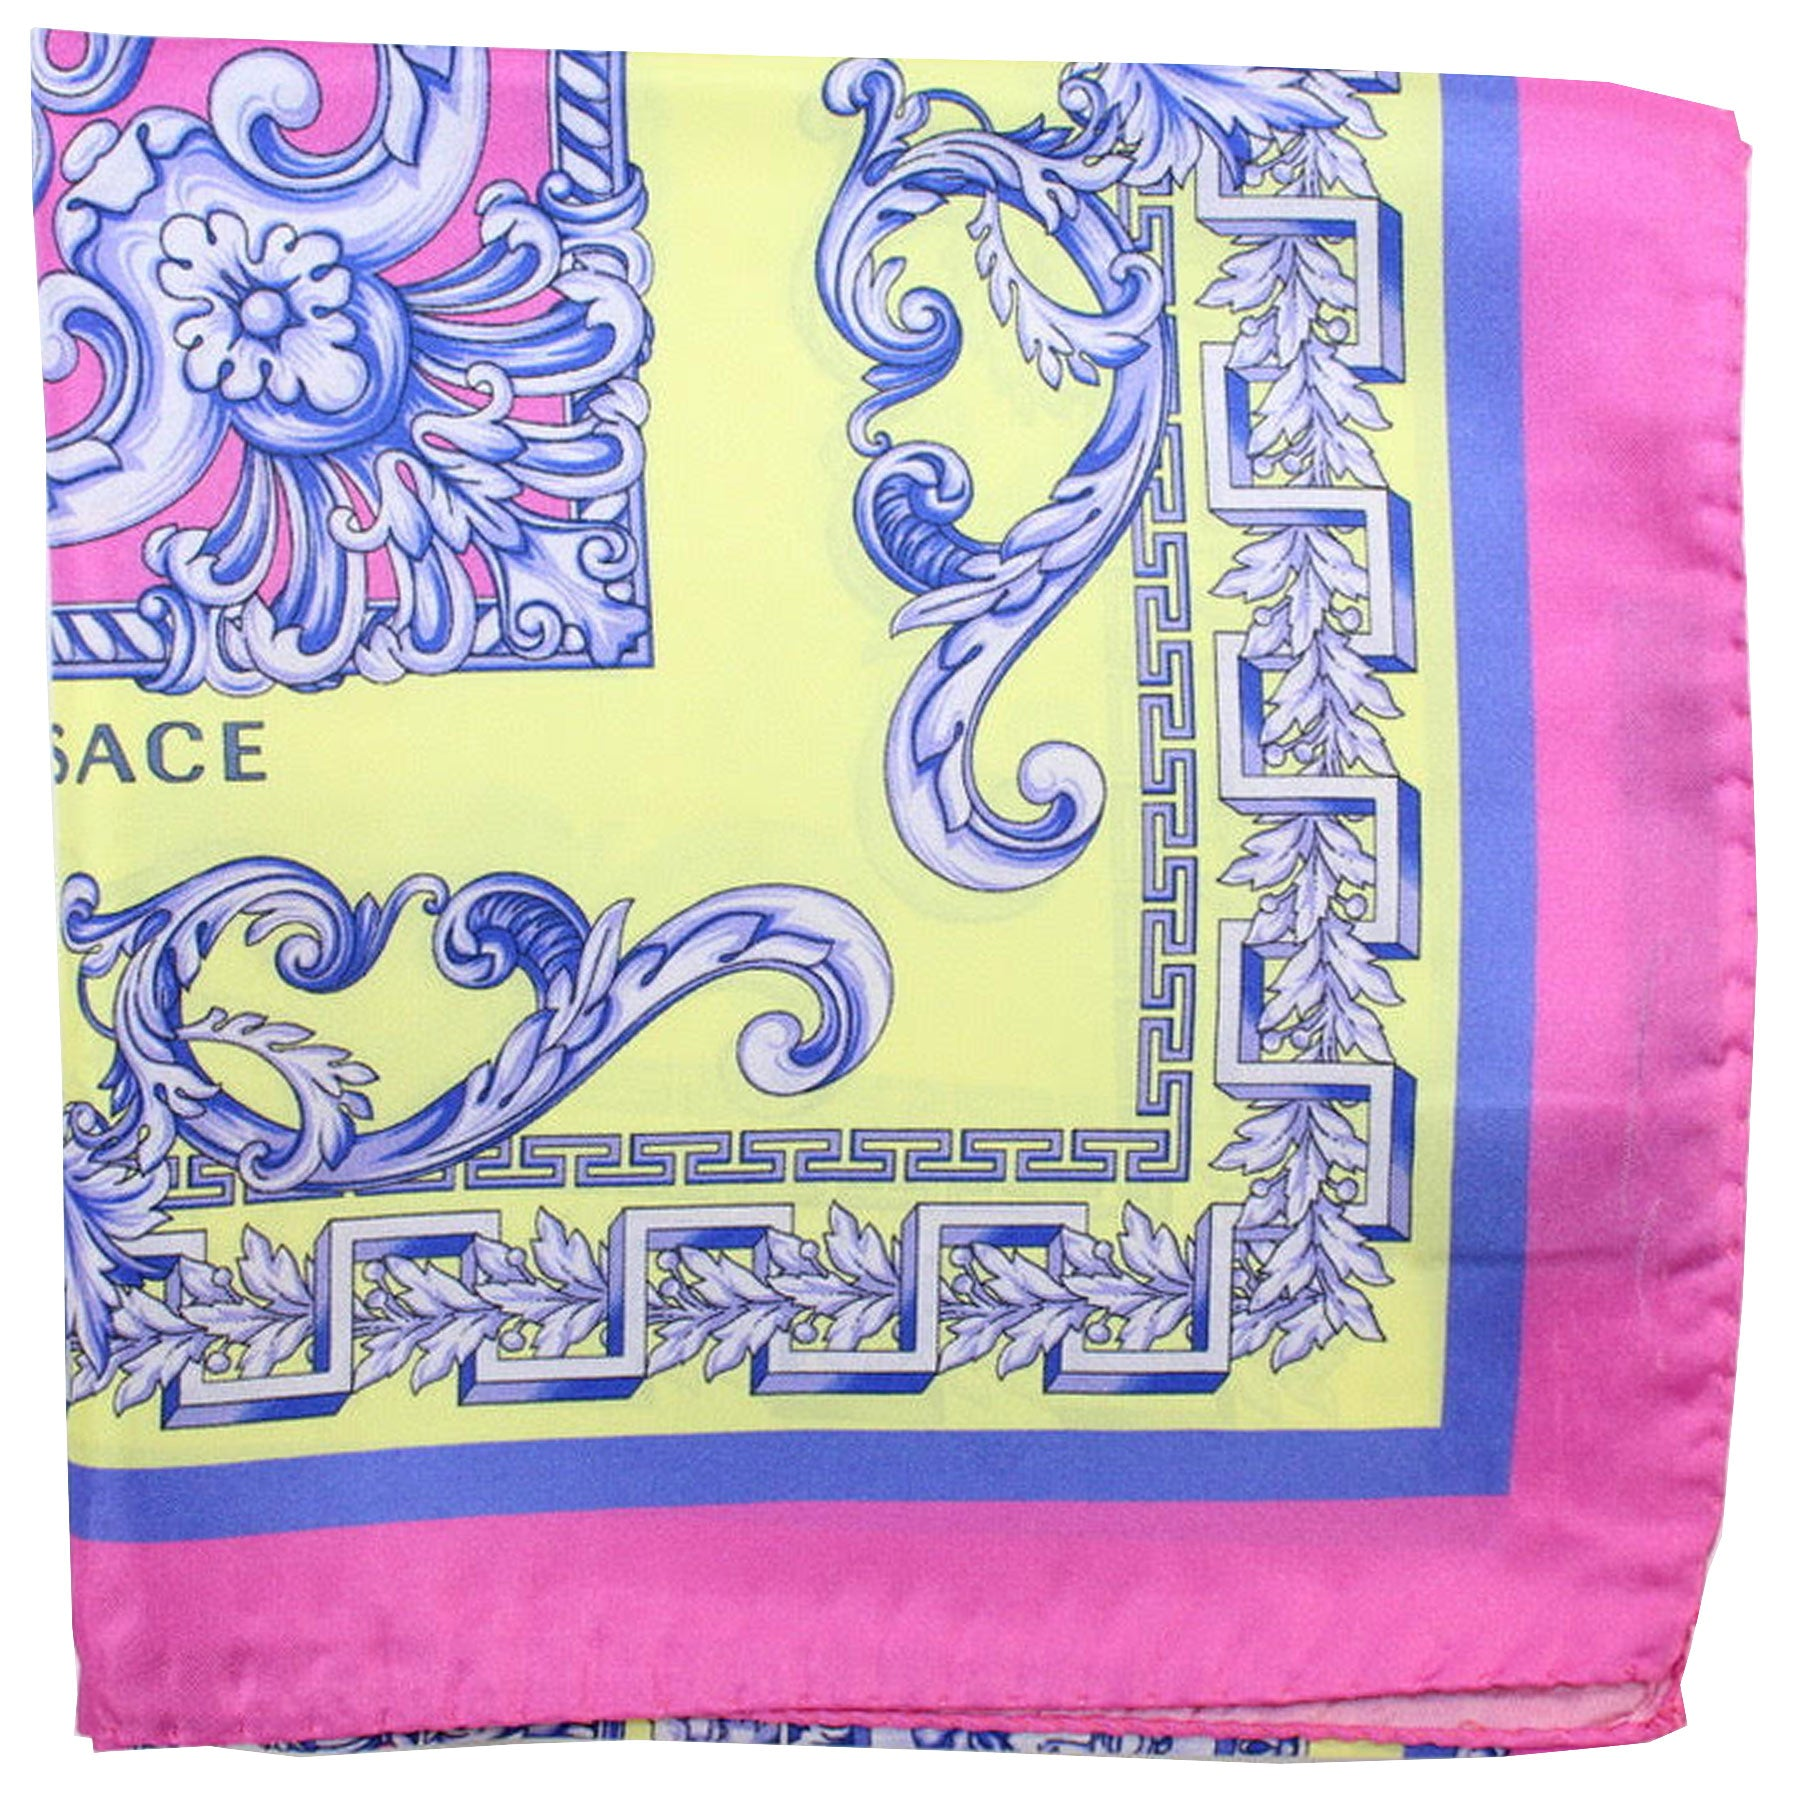 Versace Silk Scarf Pink Yellow Medallions - Large Square Scarf